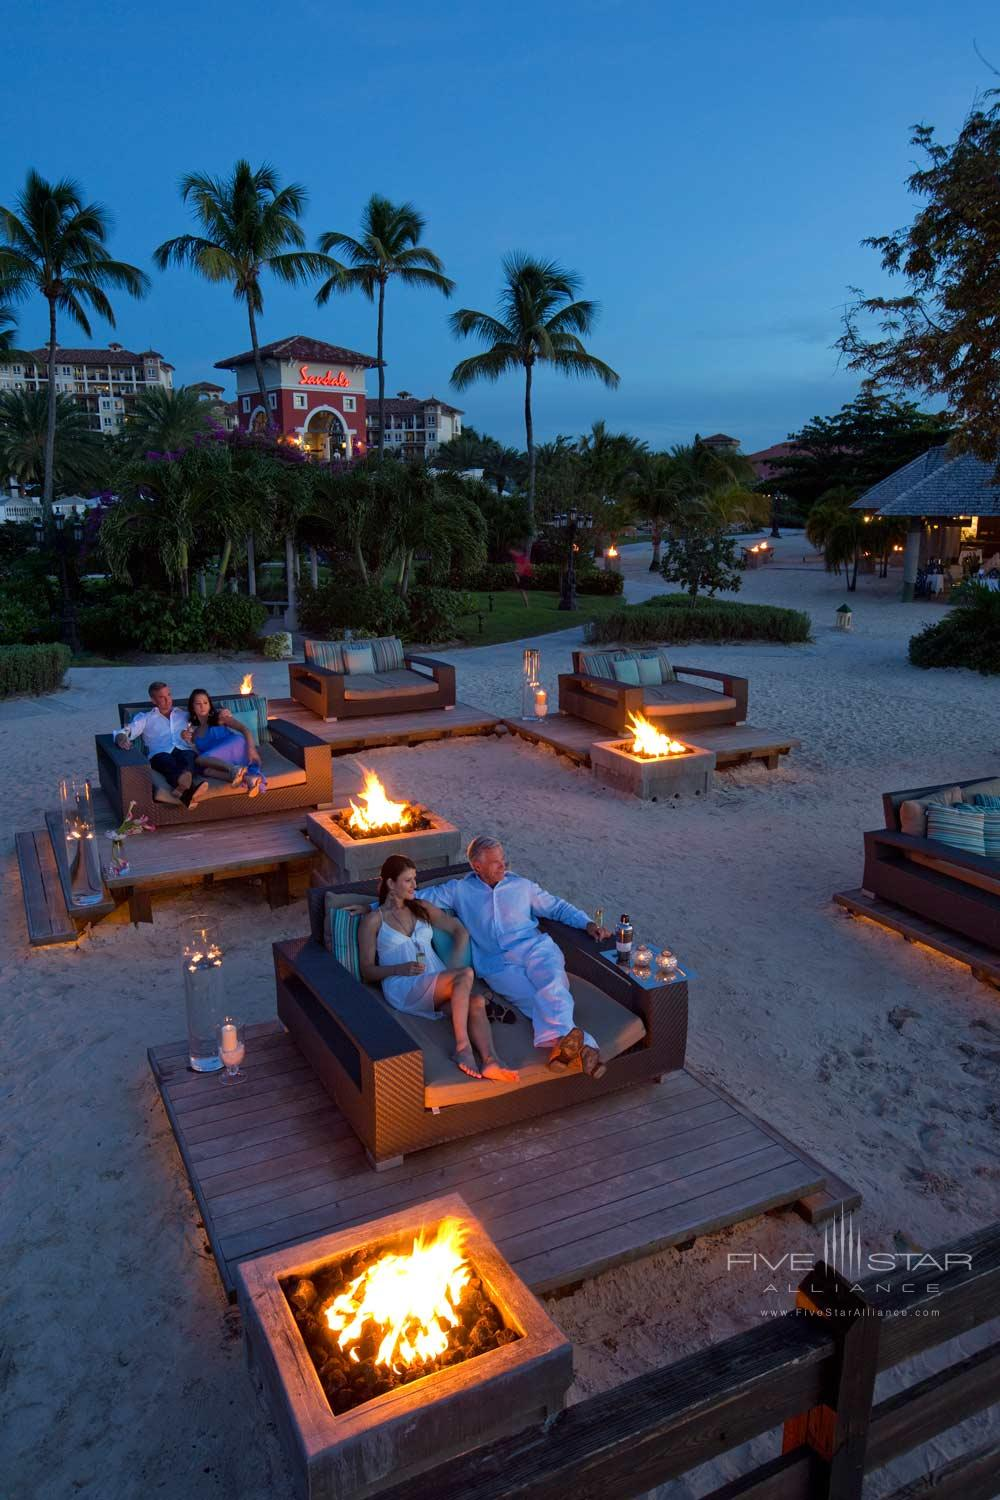 Village Fire Pit at Sandals Grande AntiguaSaint JohnsAntigua and Barbuda